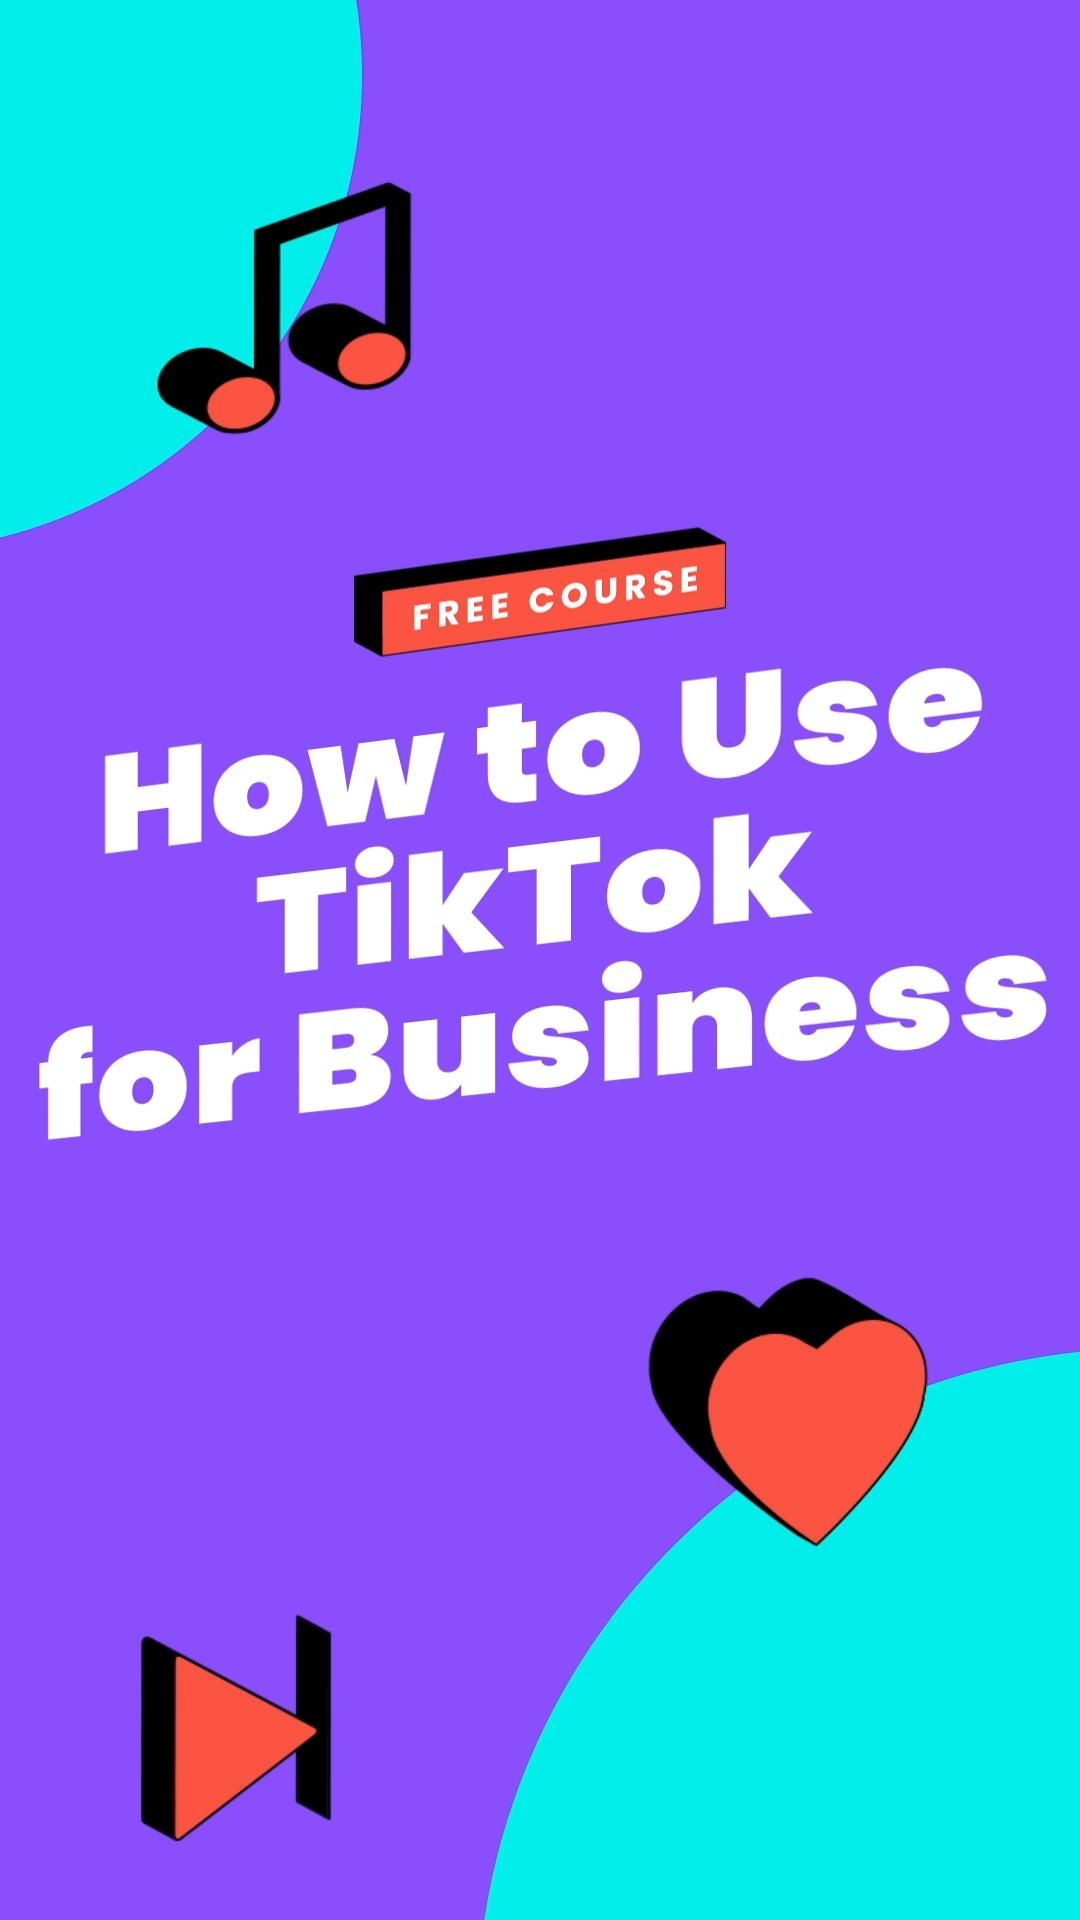 How To Use Tiktok For Business Video Social Media Content Marketing Business